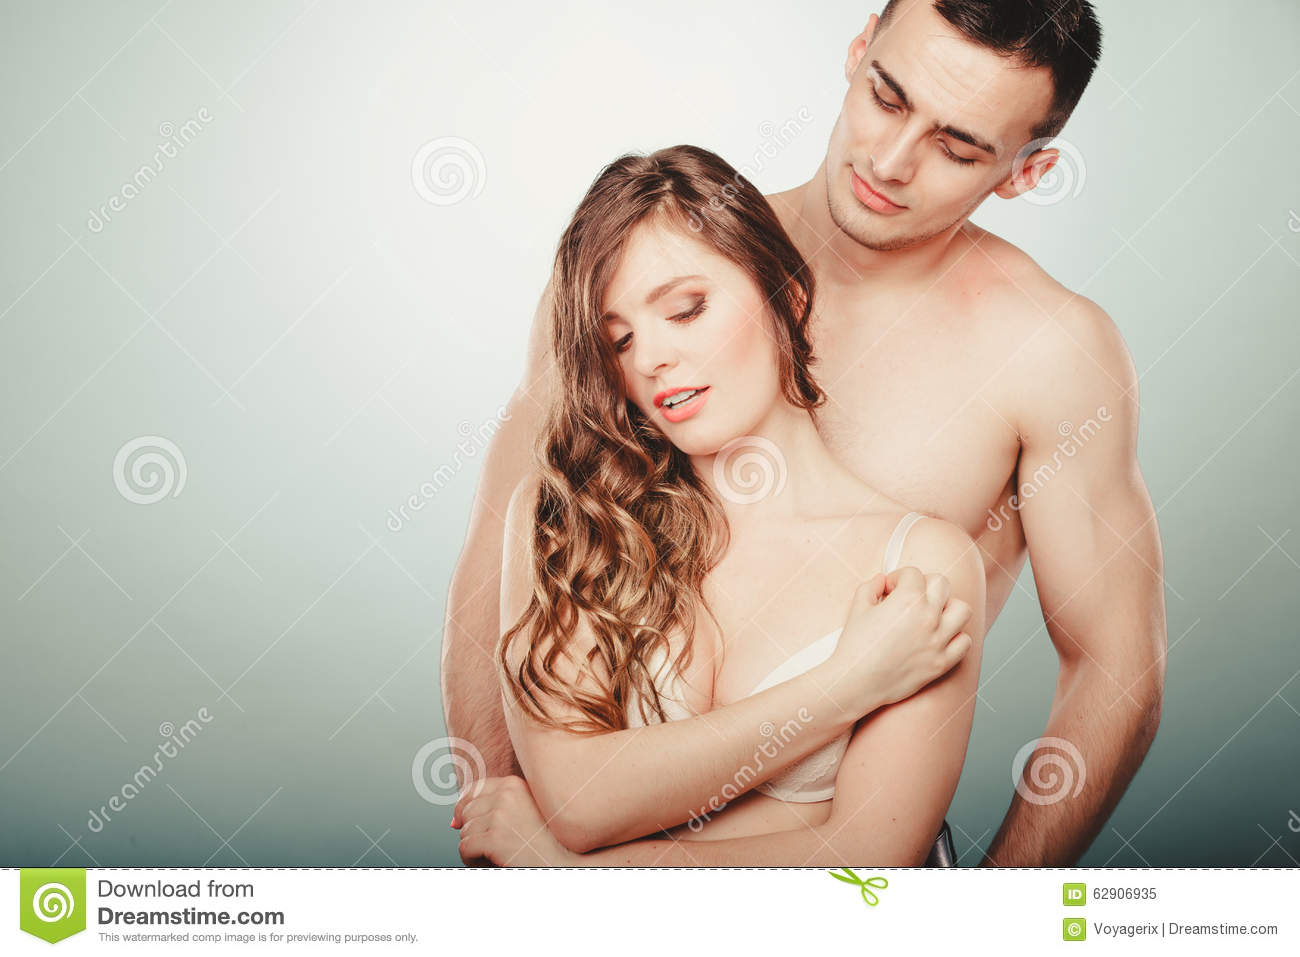 Oversexed interracial free movies